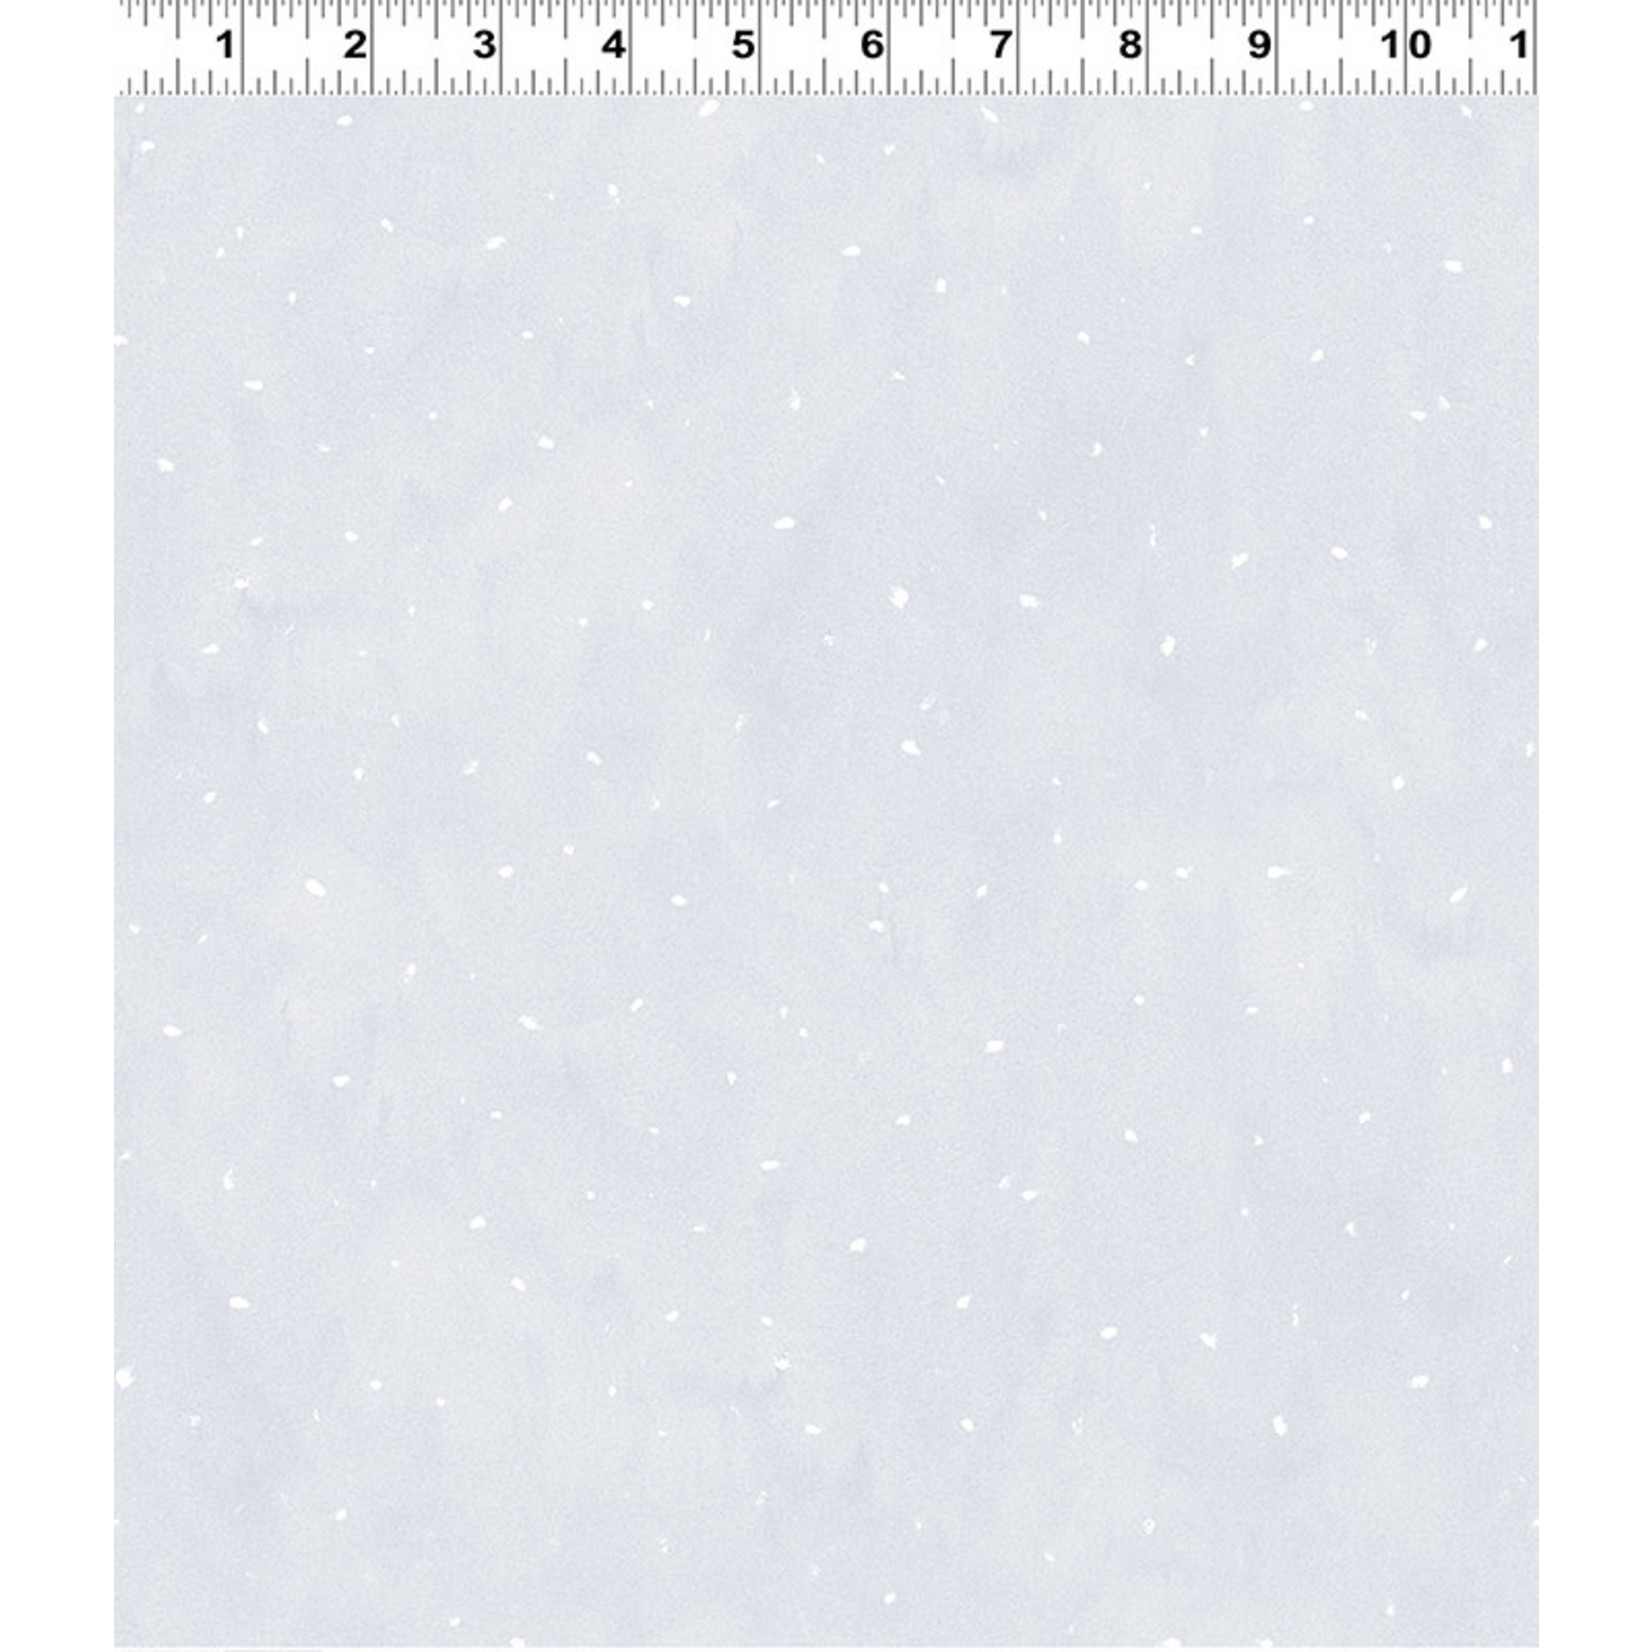 Clothworks Guess How Much I Love You, Flurries, Grey (Y3084-118) per cm or $20/m